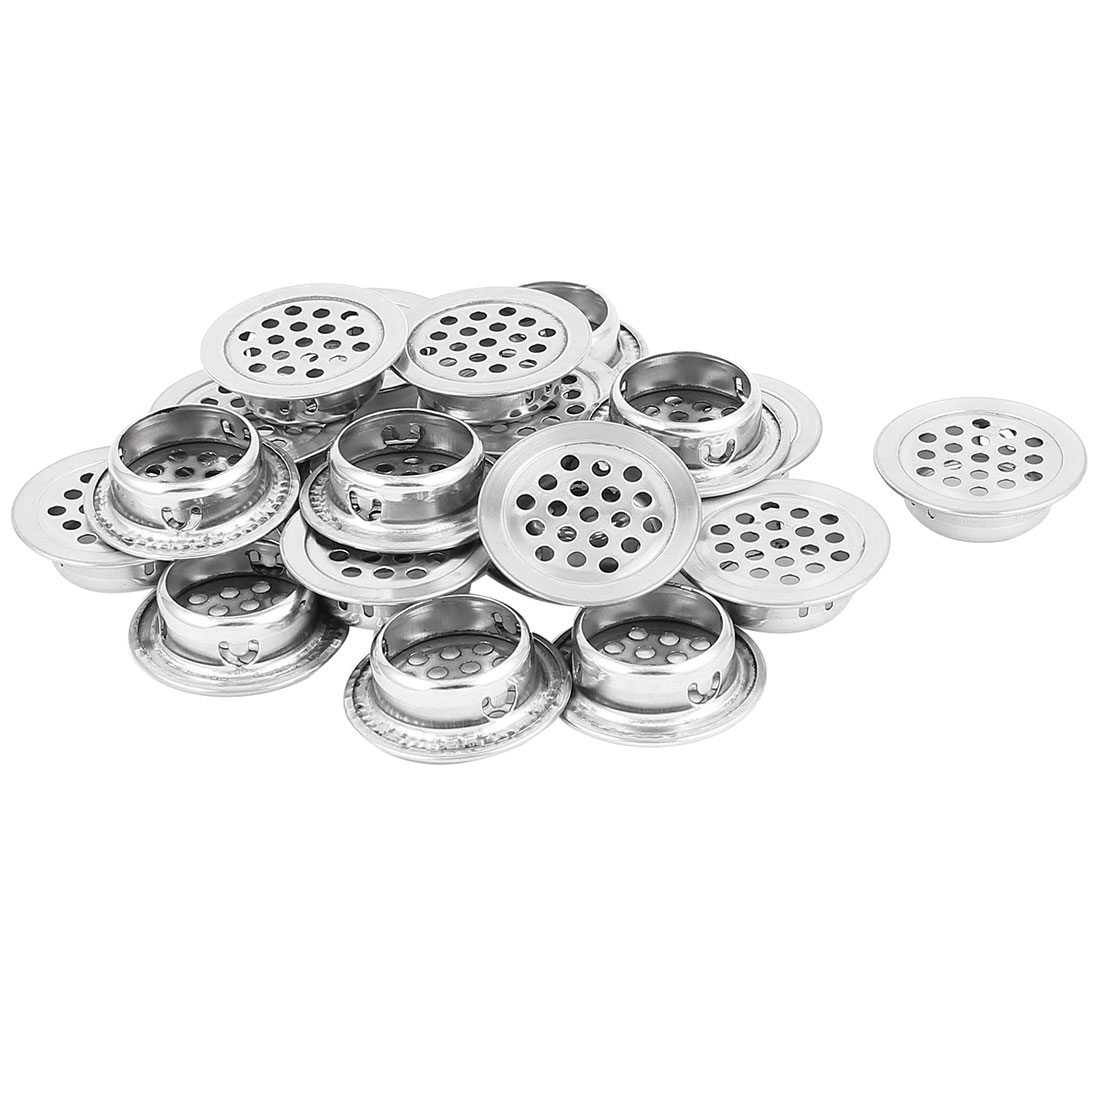 25mm Bottom Dia Mesh Panel Shoes Cupboard Cabinet Air Vent Louver Cover 20pcs